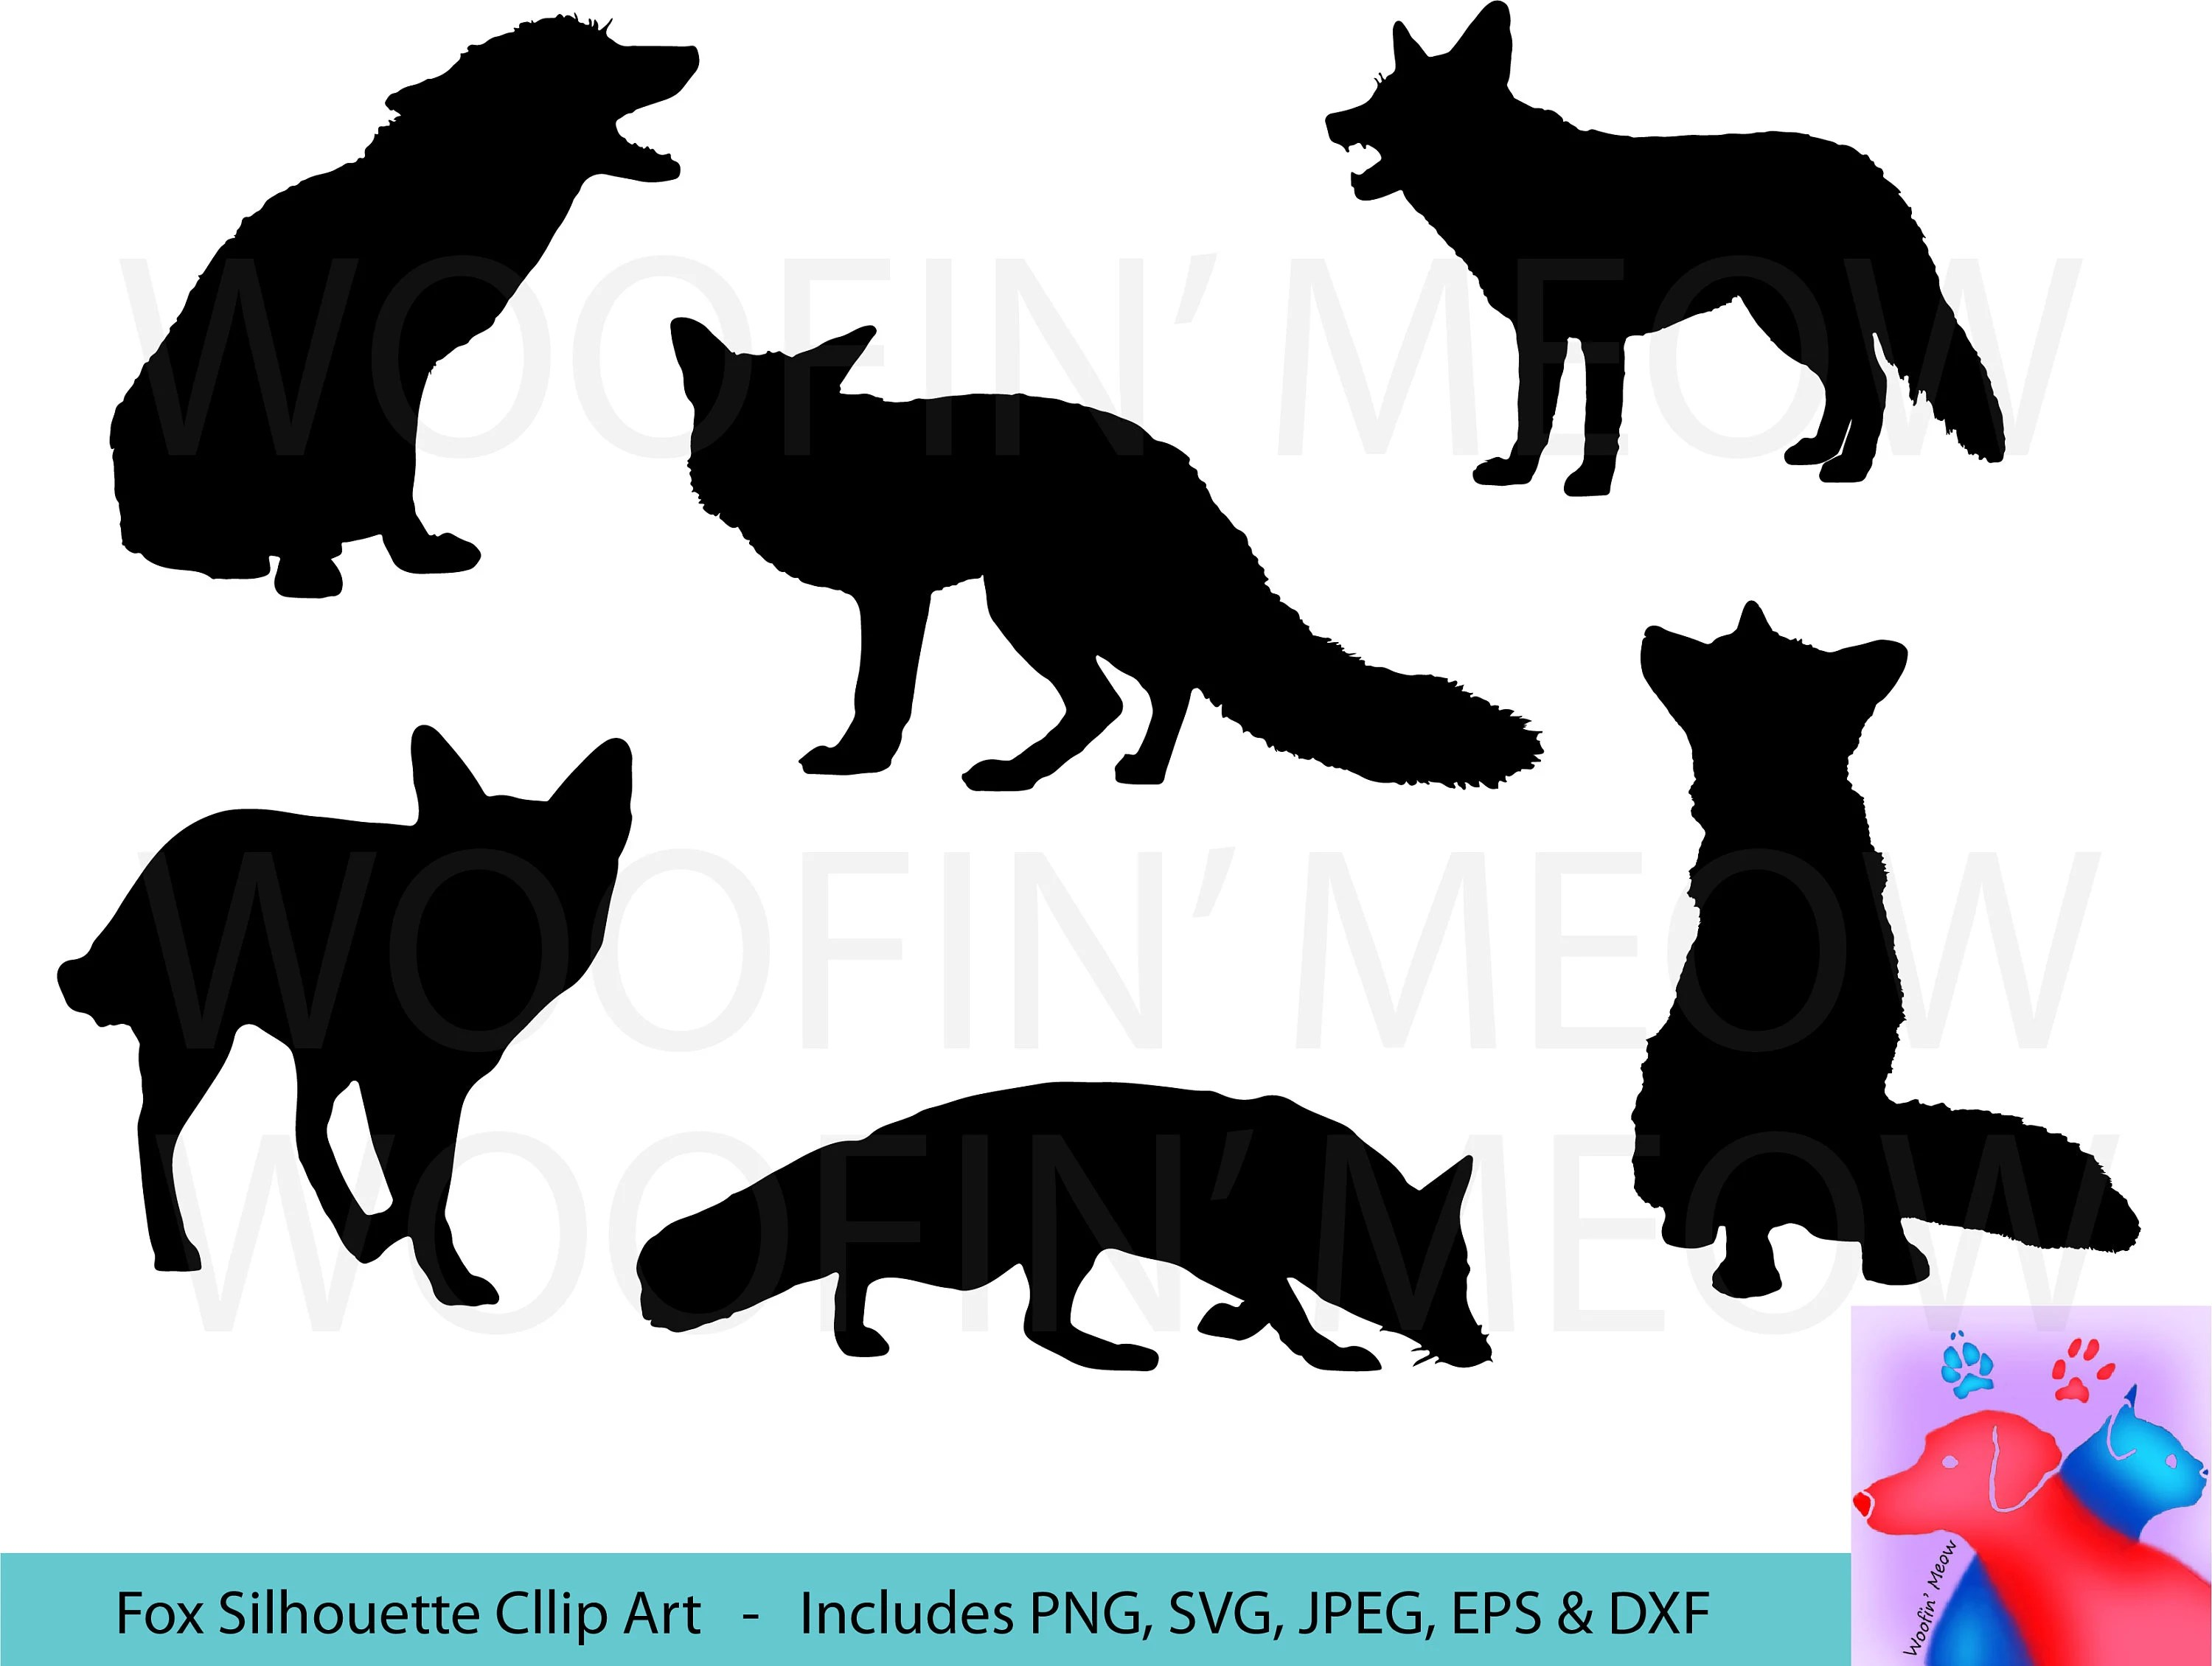 Fox Meubles Algerie Fox Silhouette Svg Clipart Fox Vector Sticker Fox Cut File Bottle Sticker Laptop Sticker Window Decal Commercial Use Instant Download